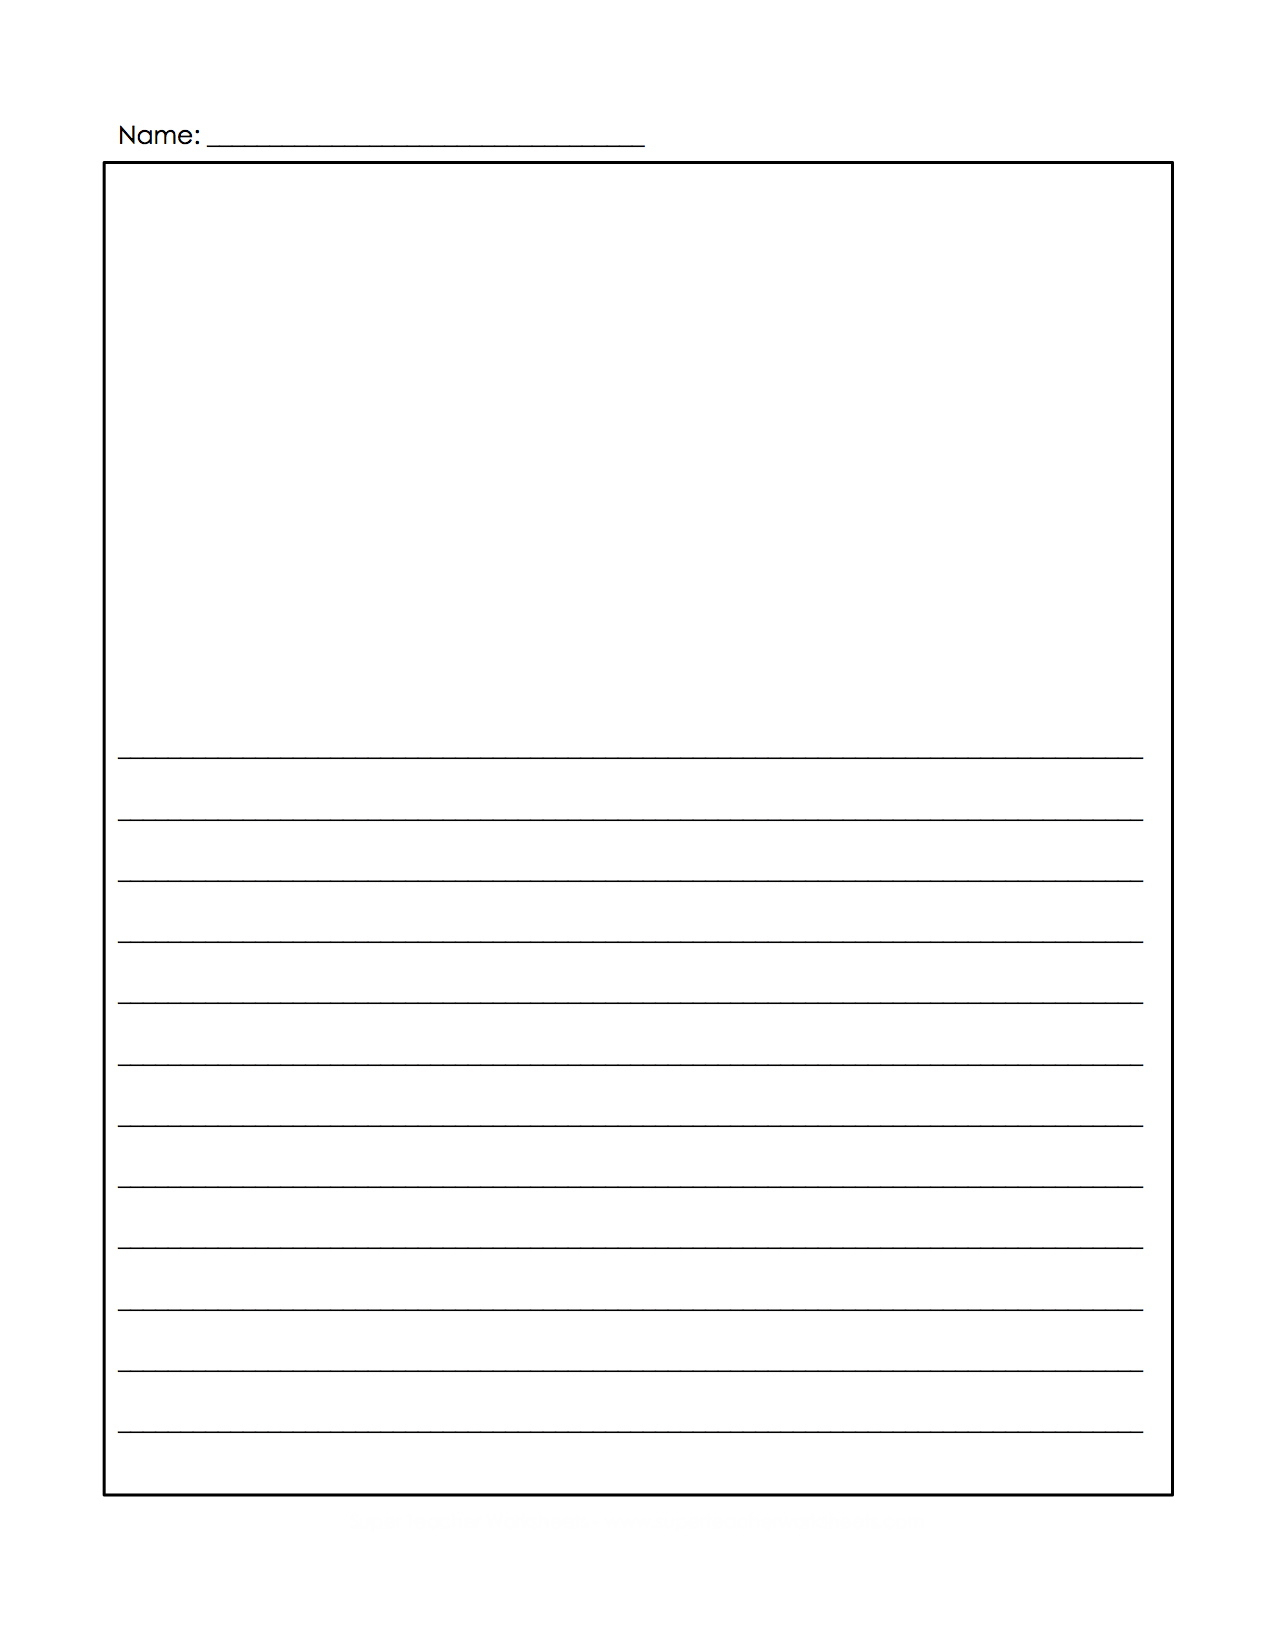 Free Printable Handwriting Paper With Picture Box   Download Them - Free Printable Writing Paper With Picture Box